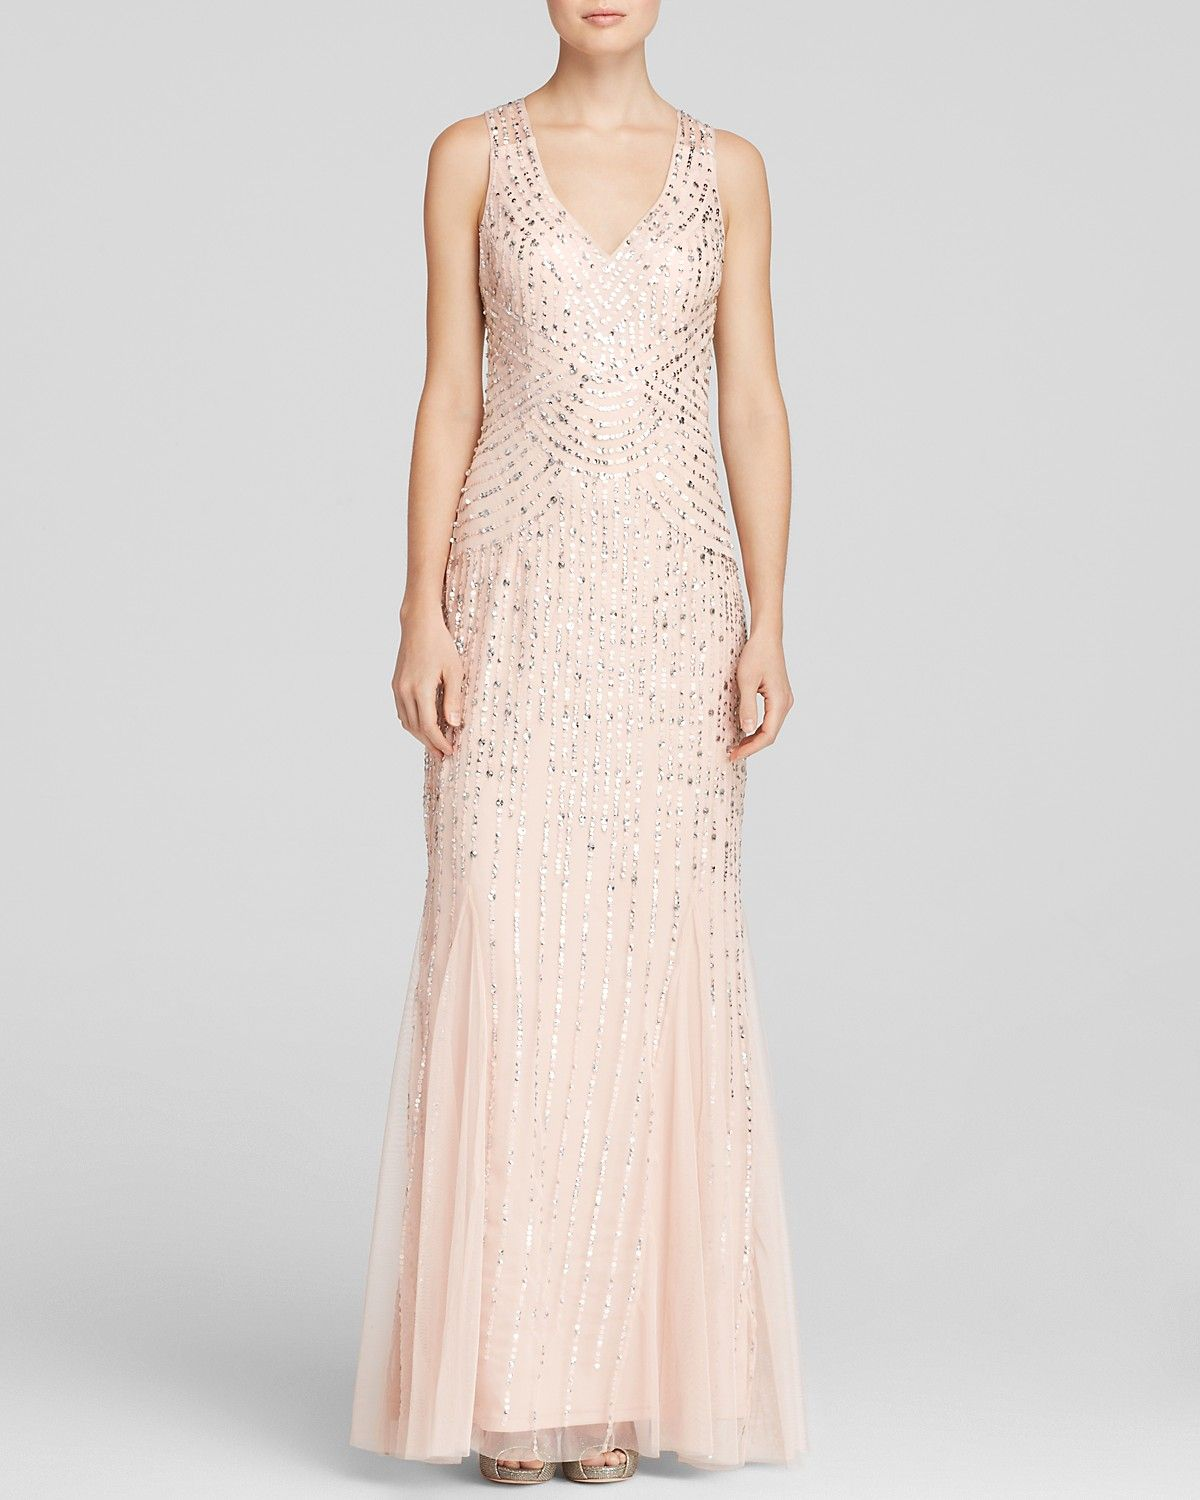 Aidan mattox gown sleeveless v neck beaded godet aidan mattox gown sleeveless v neck beaded godet bloomingdales ombrellifo Images